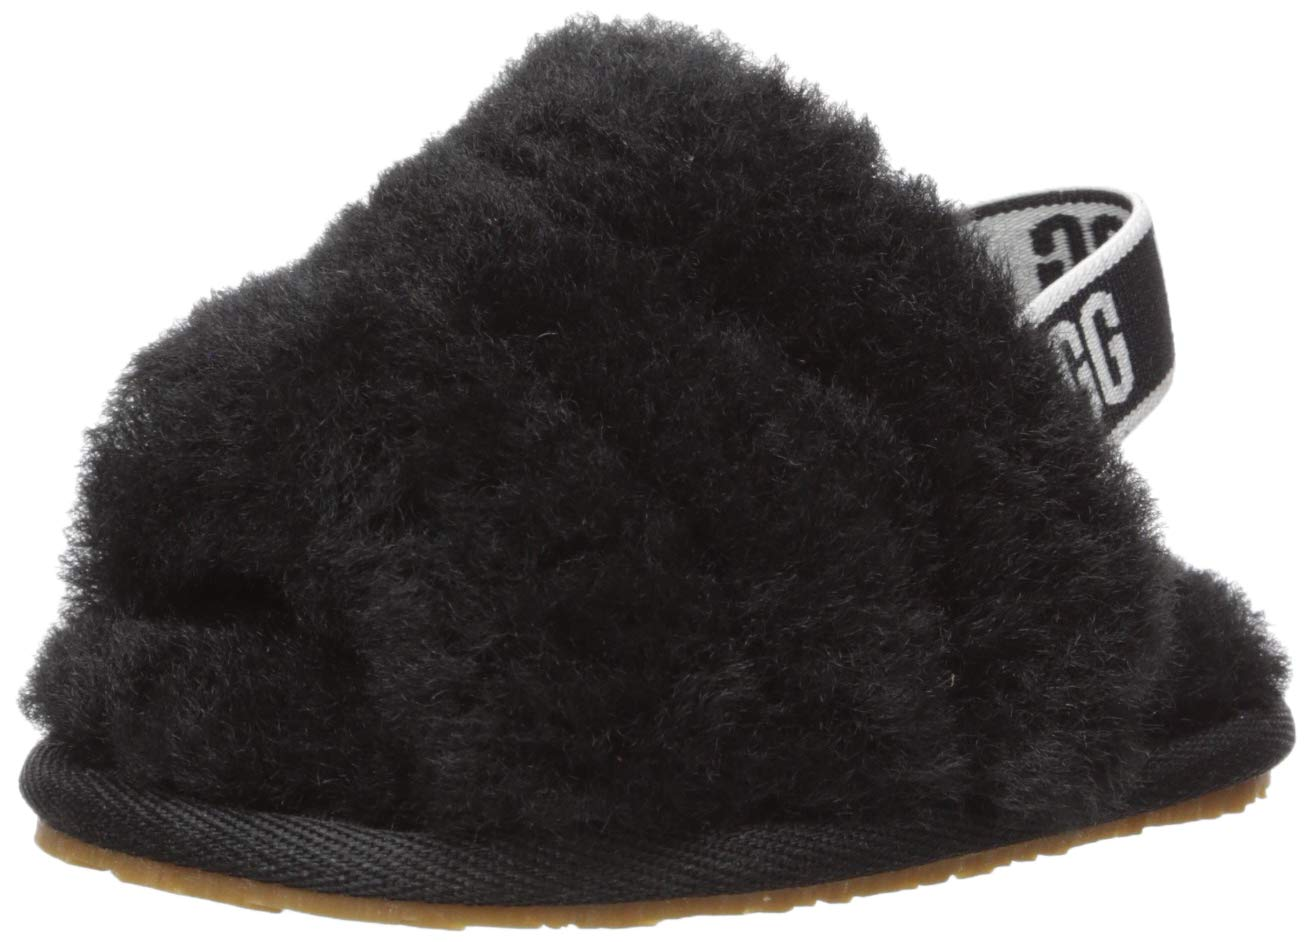 UGG Baby I Fluff Yeah Slide Flat Sandal, Black, 04/05 M US Infant by UGG